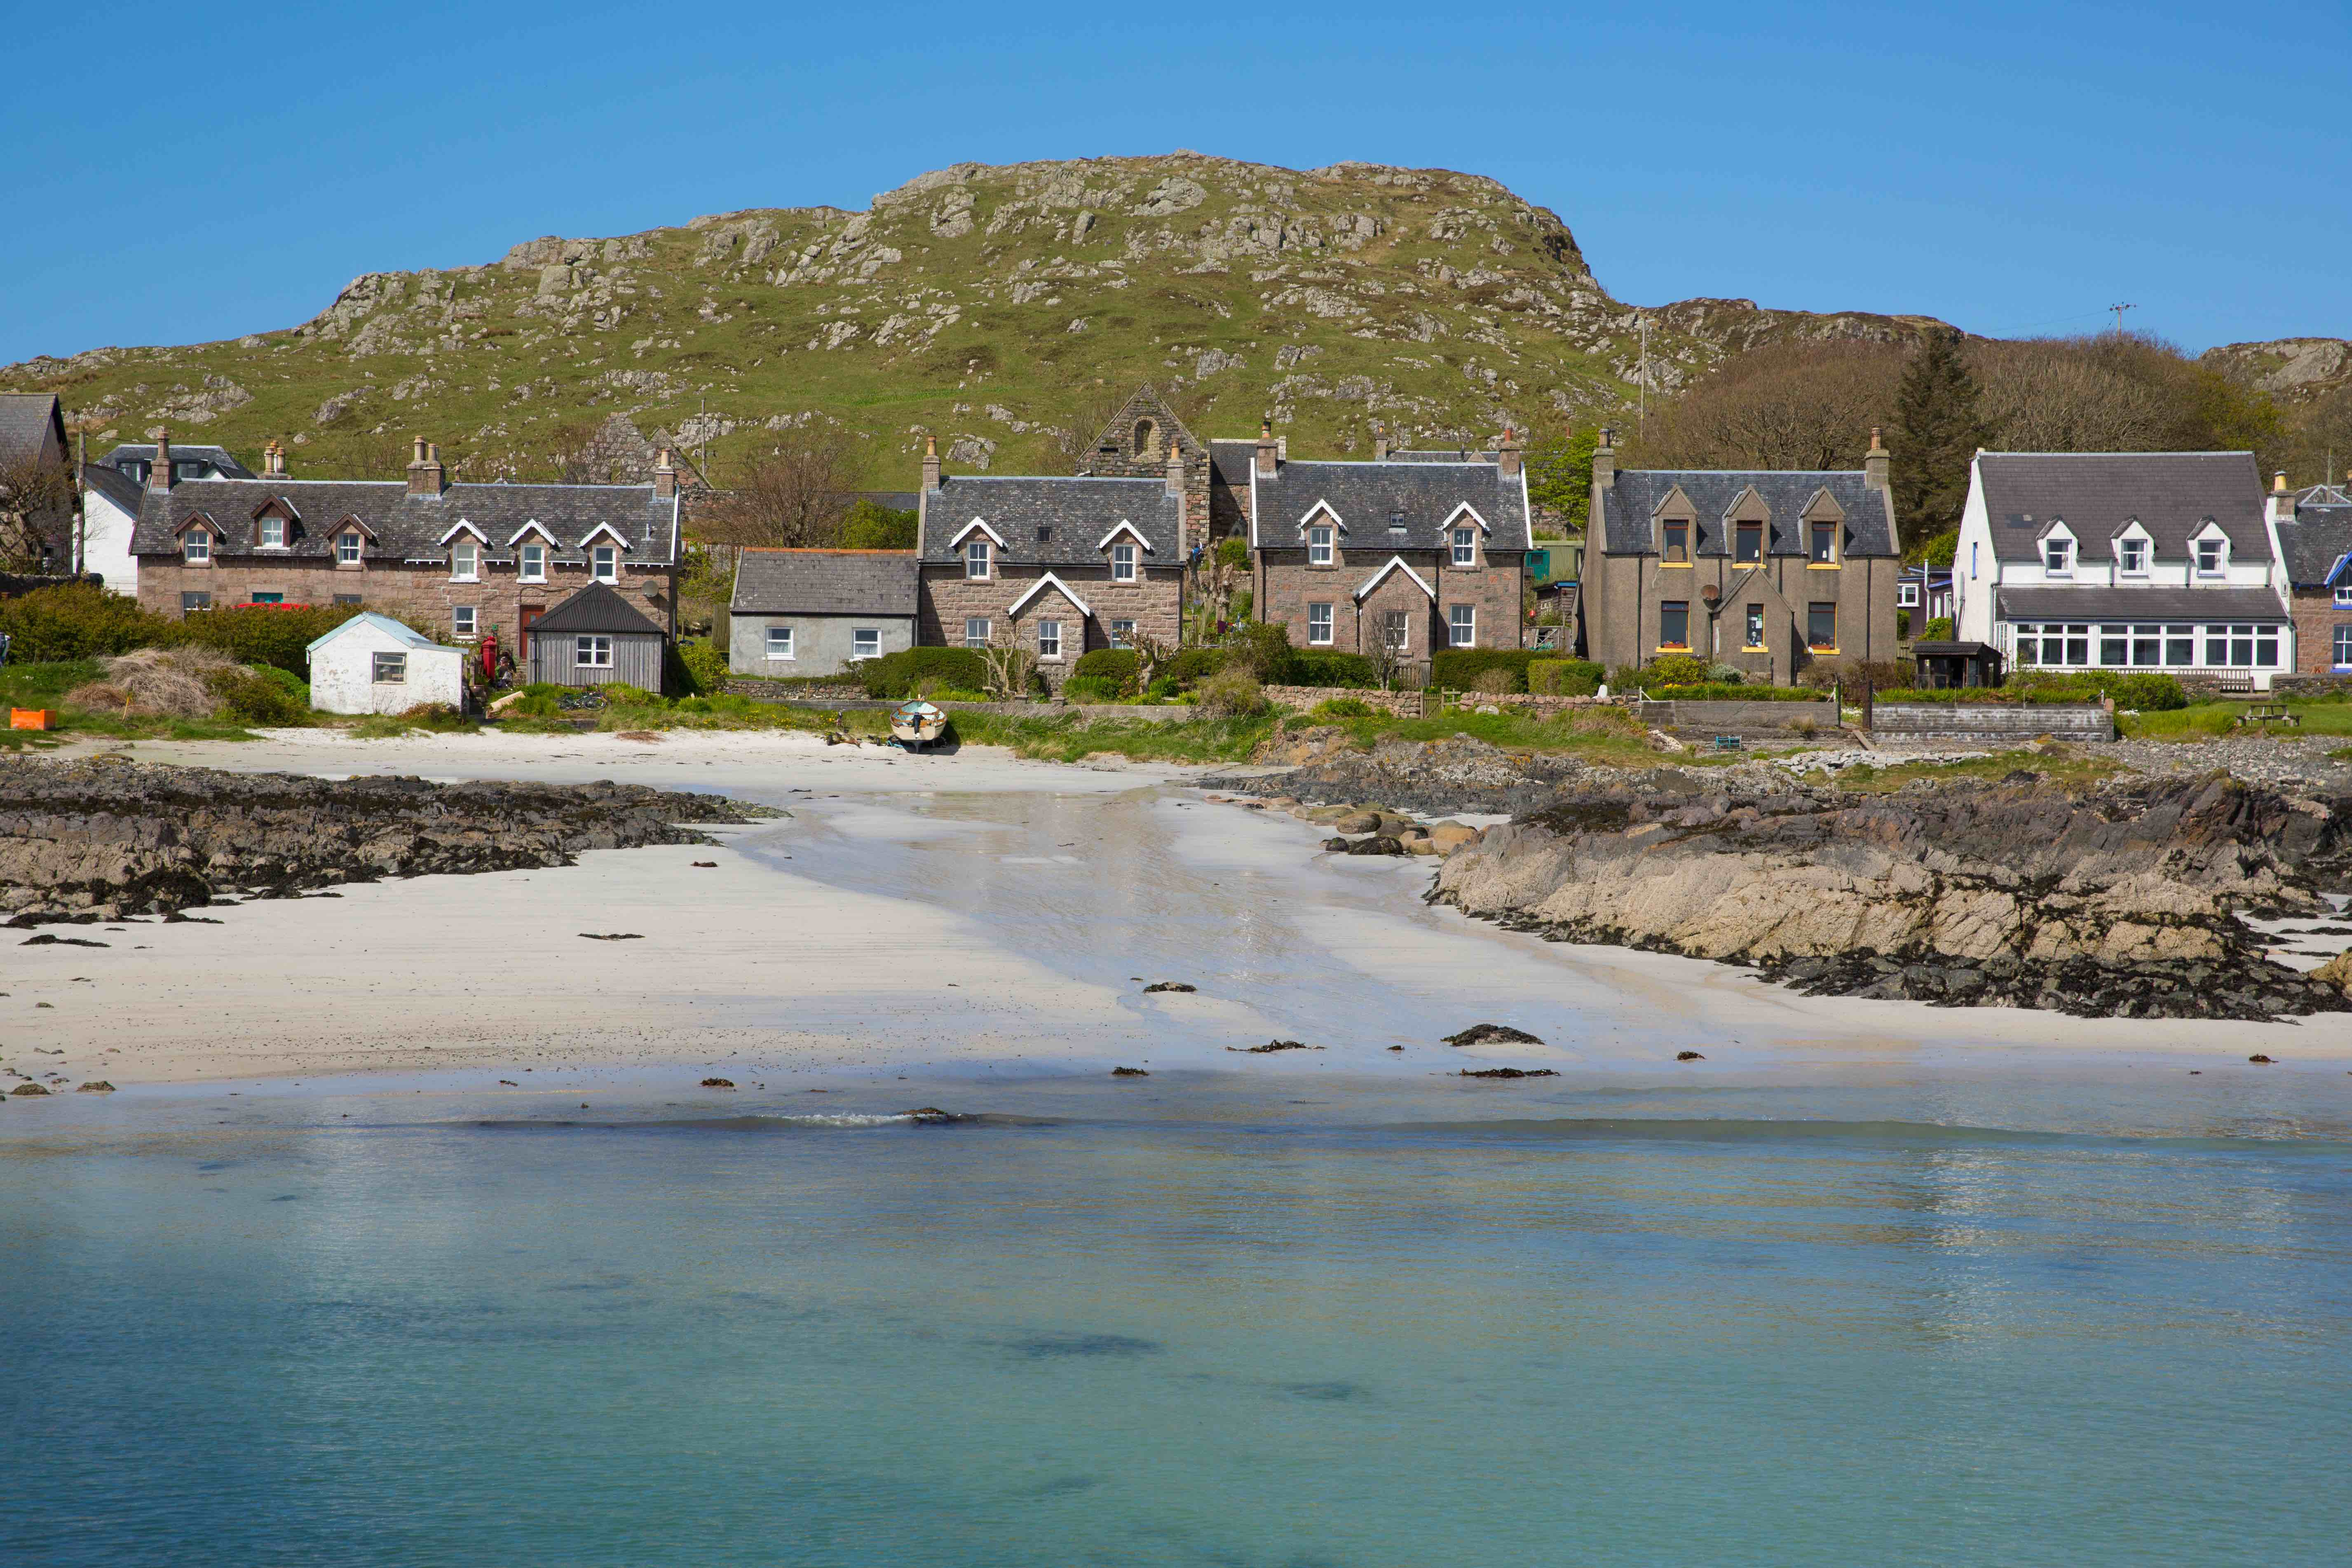 Clear blue sky hangs over the houses of the tiny Scottish island of Iona.